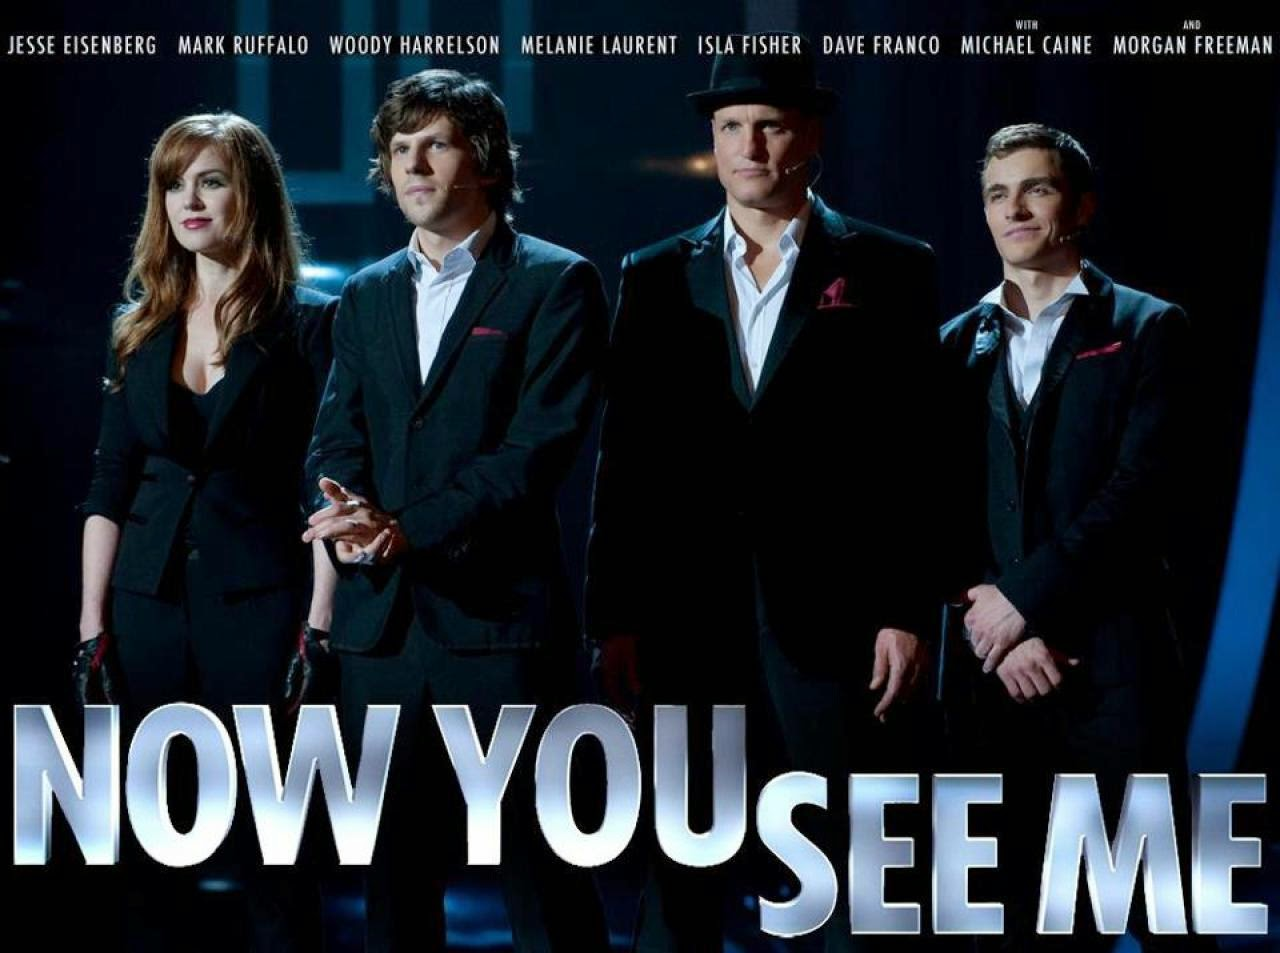 now you see me 1 full movie free download in hindi